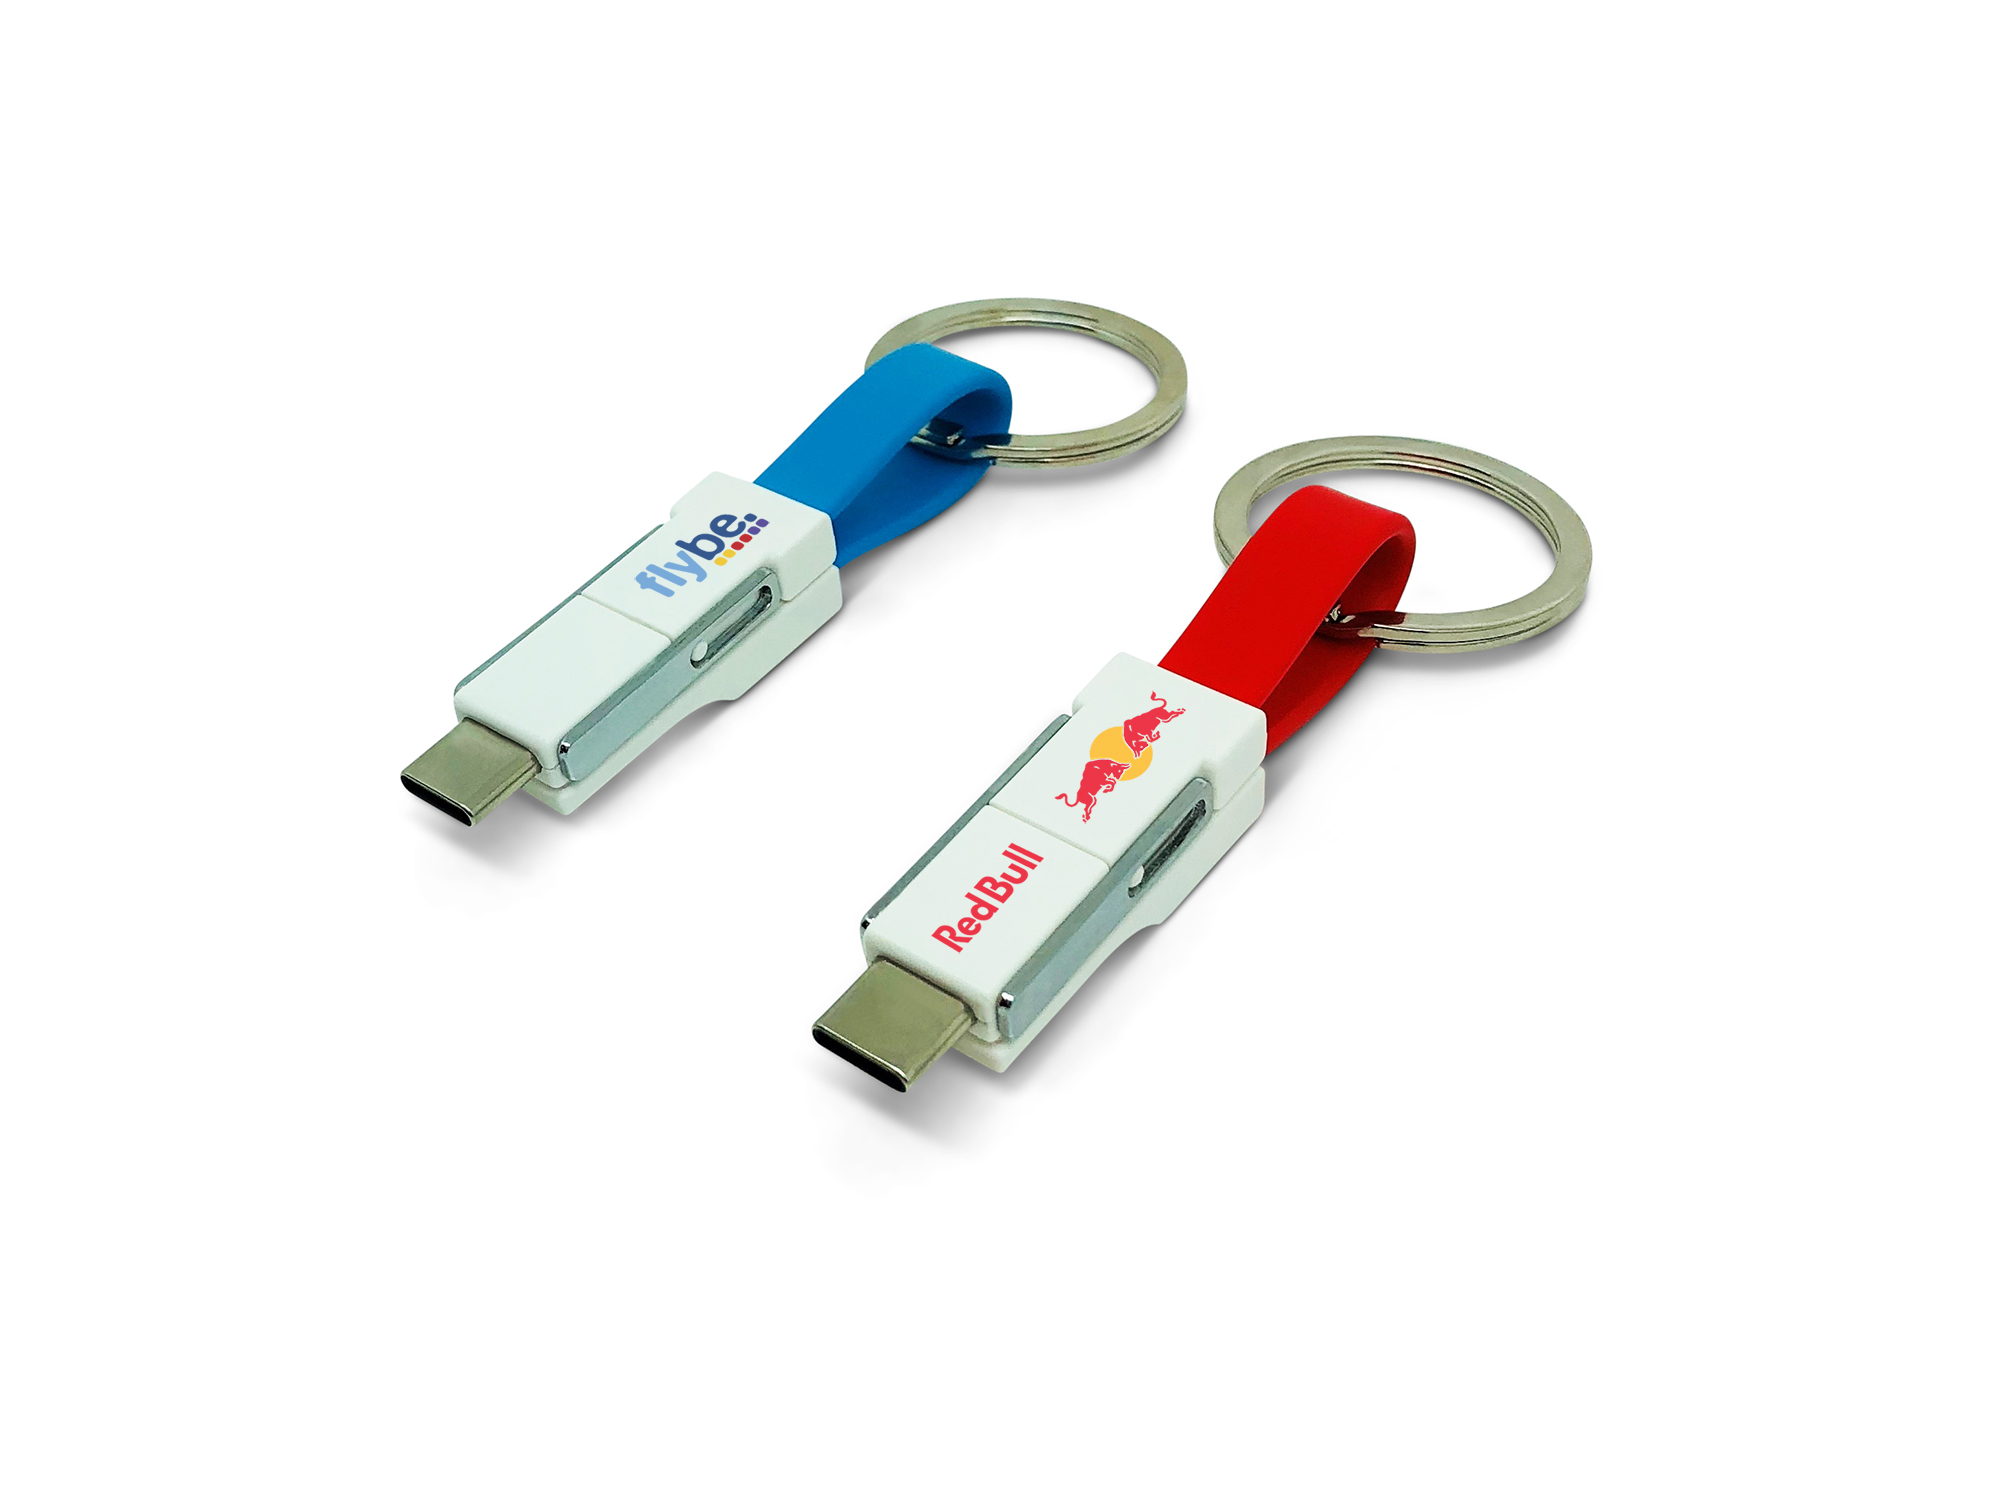 Promotional 3-in-1 Keyring Charging Cable